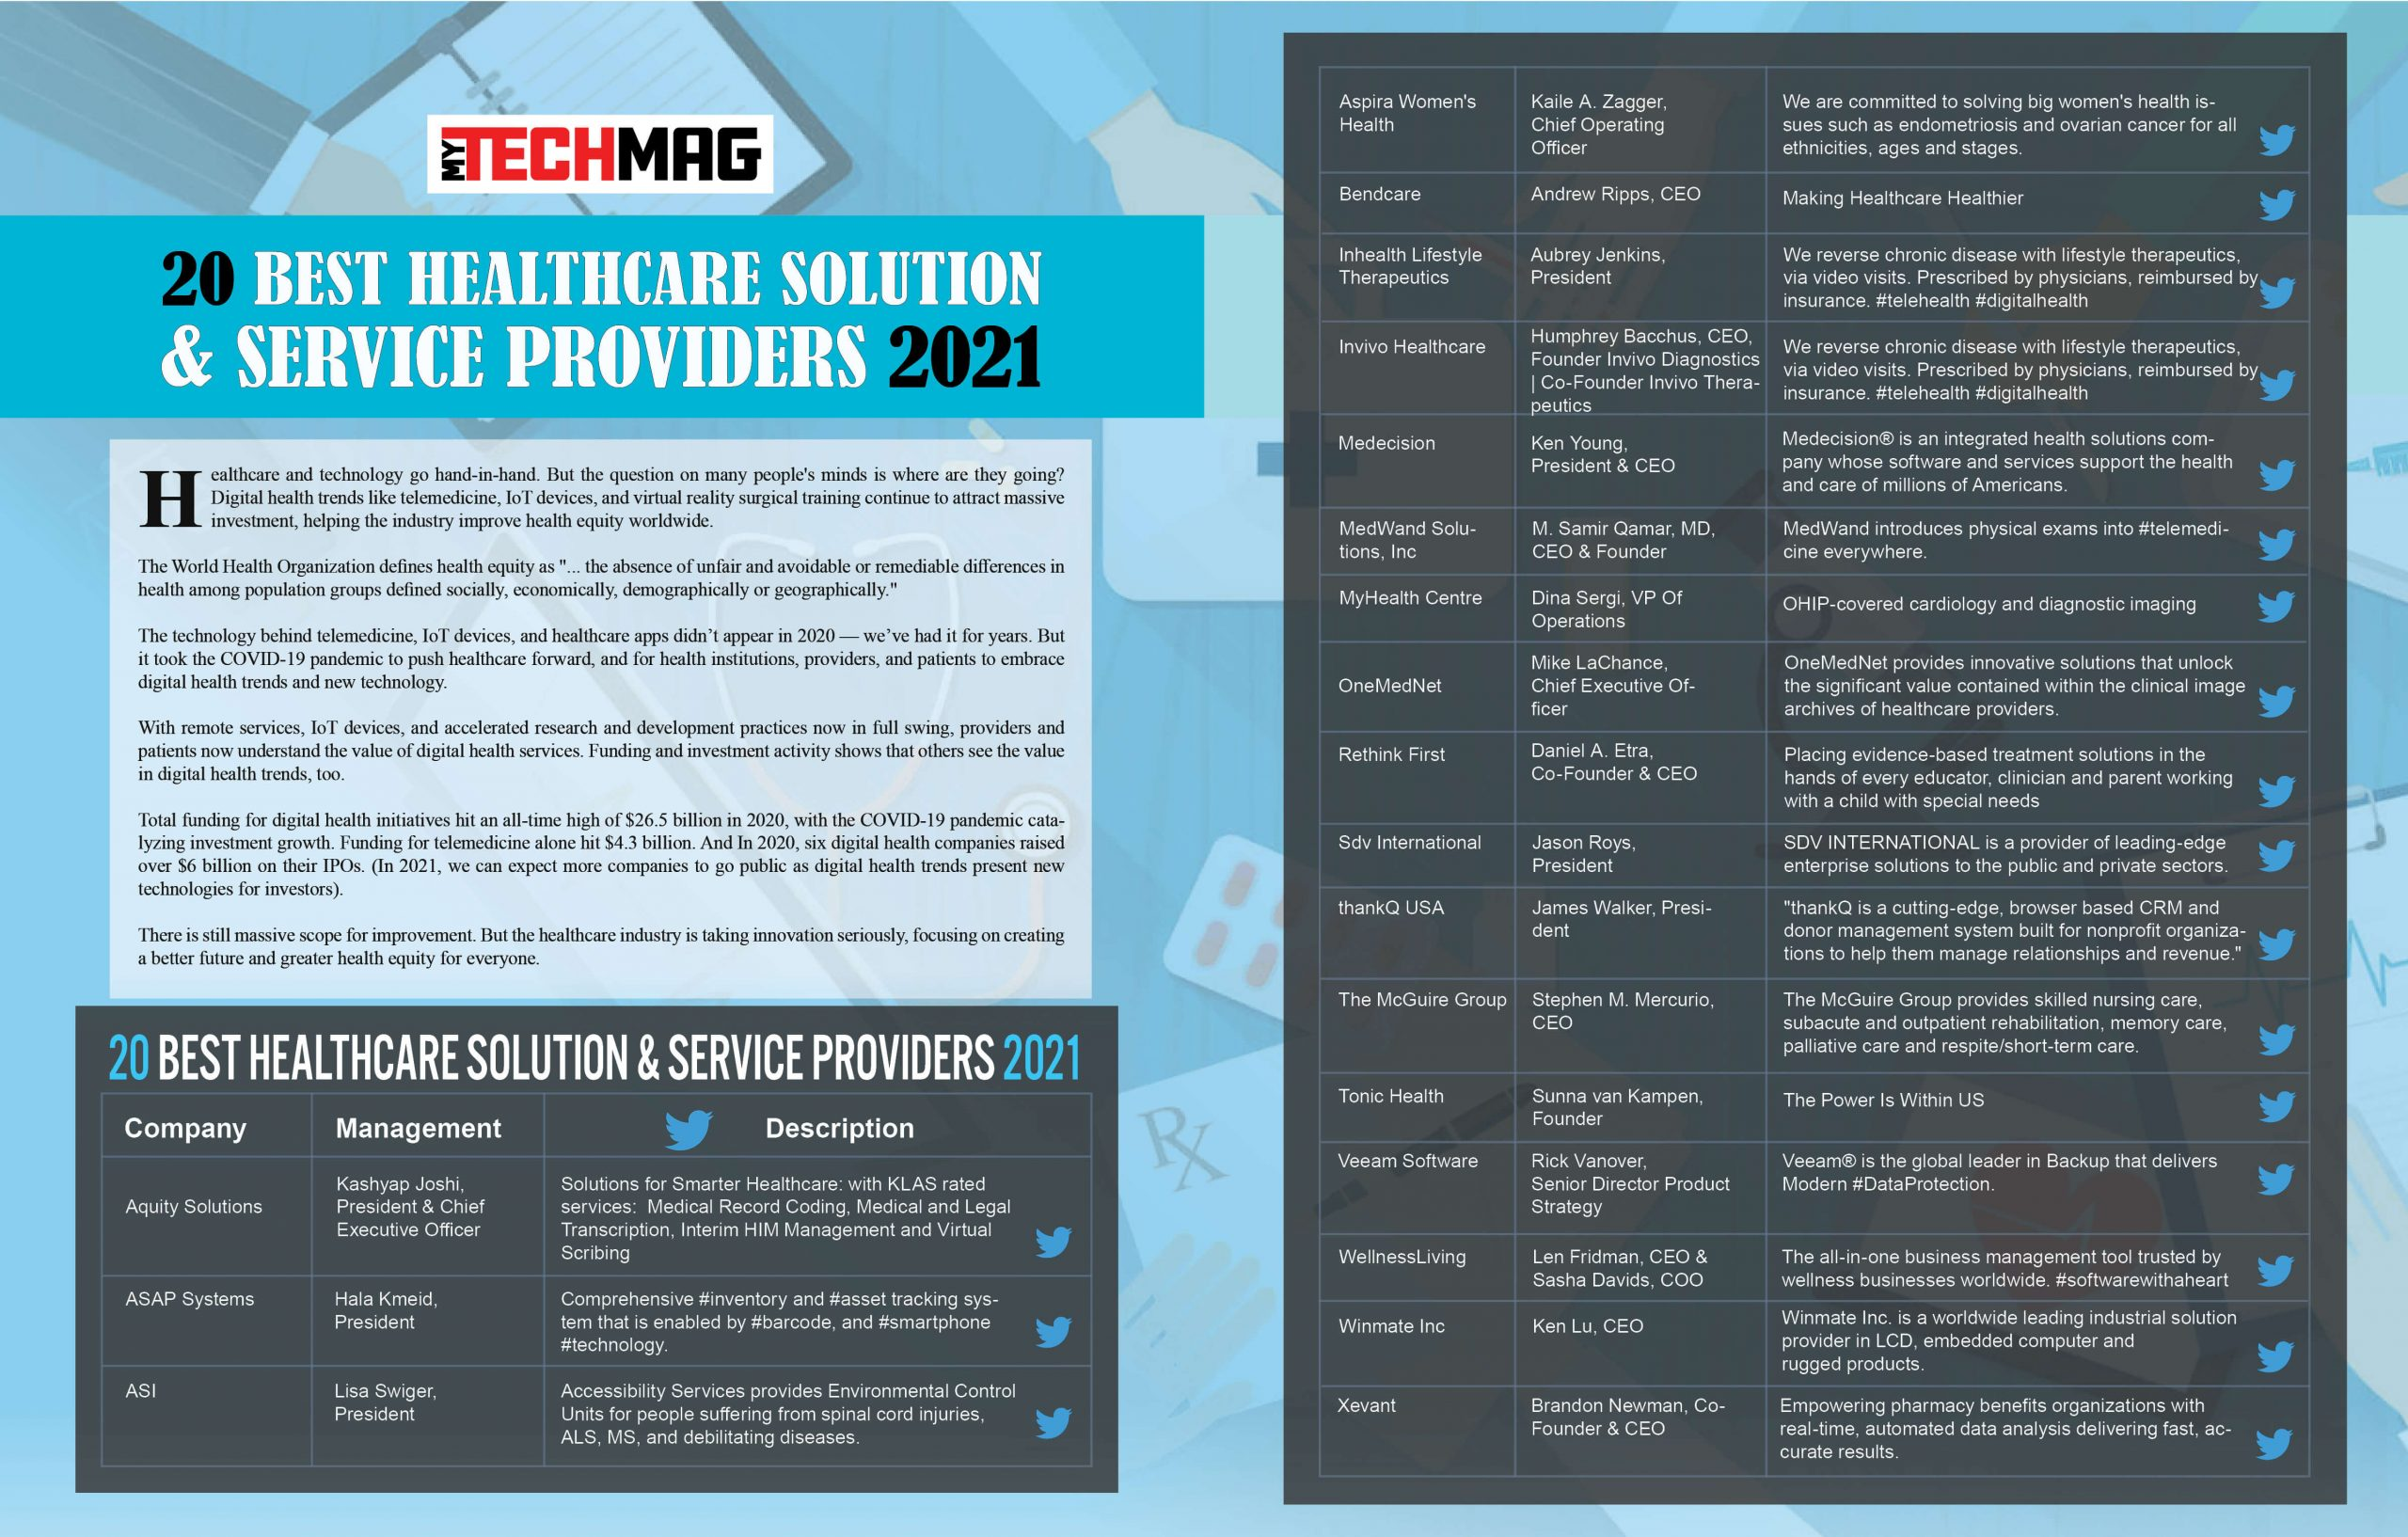 20 Best Healthcare Solution & Service Providers 2021